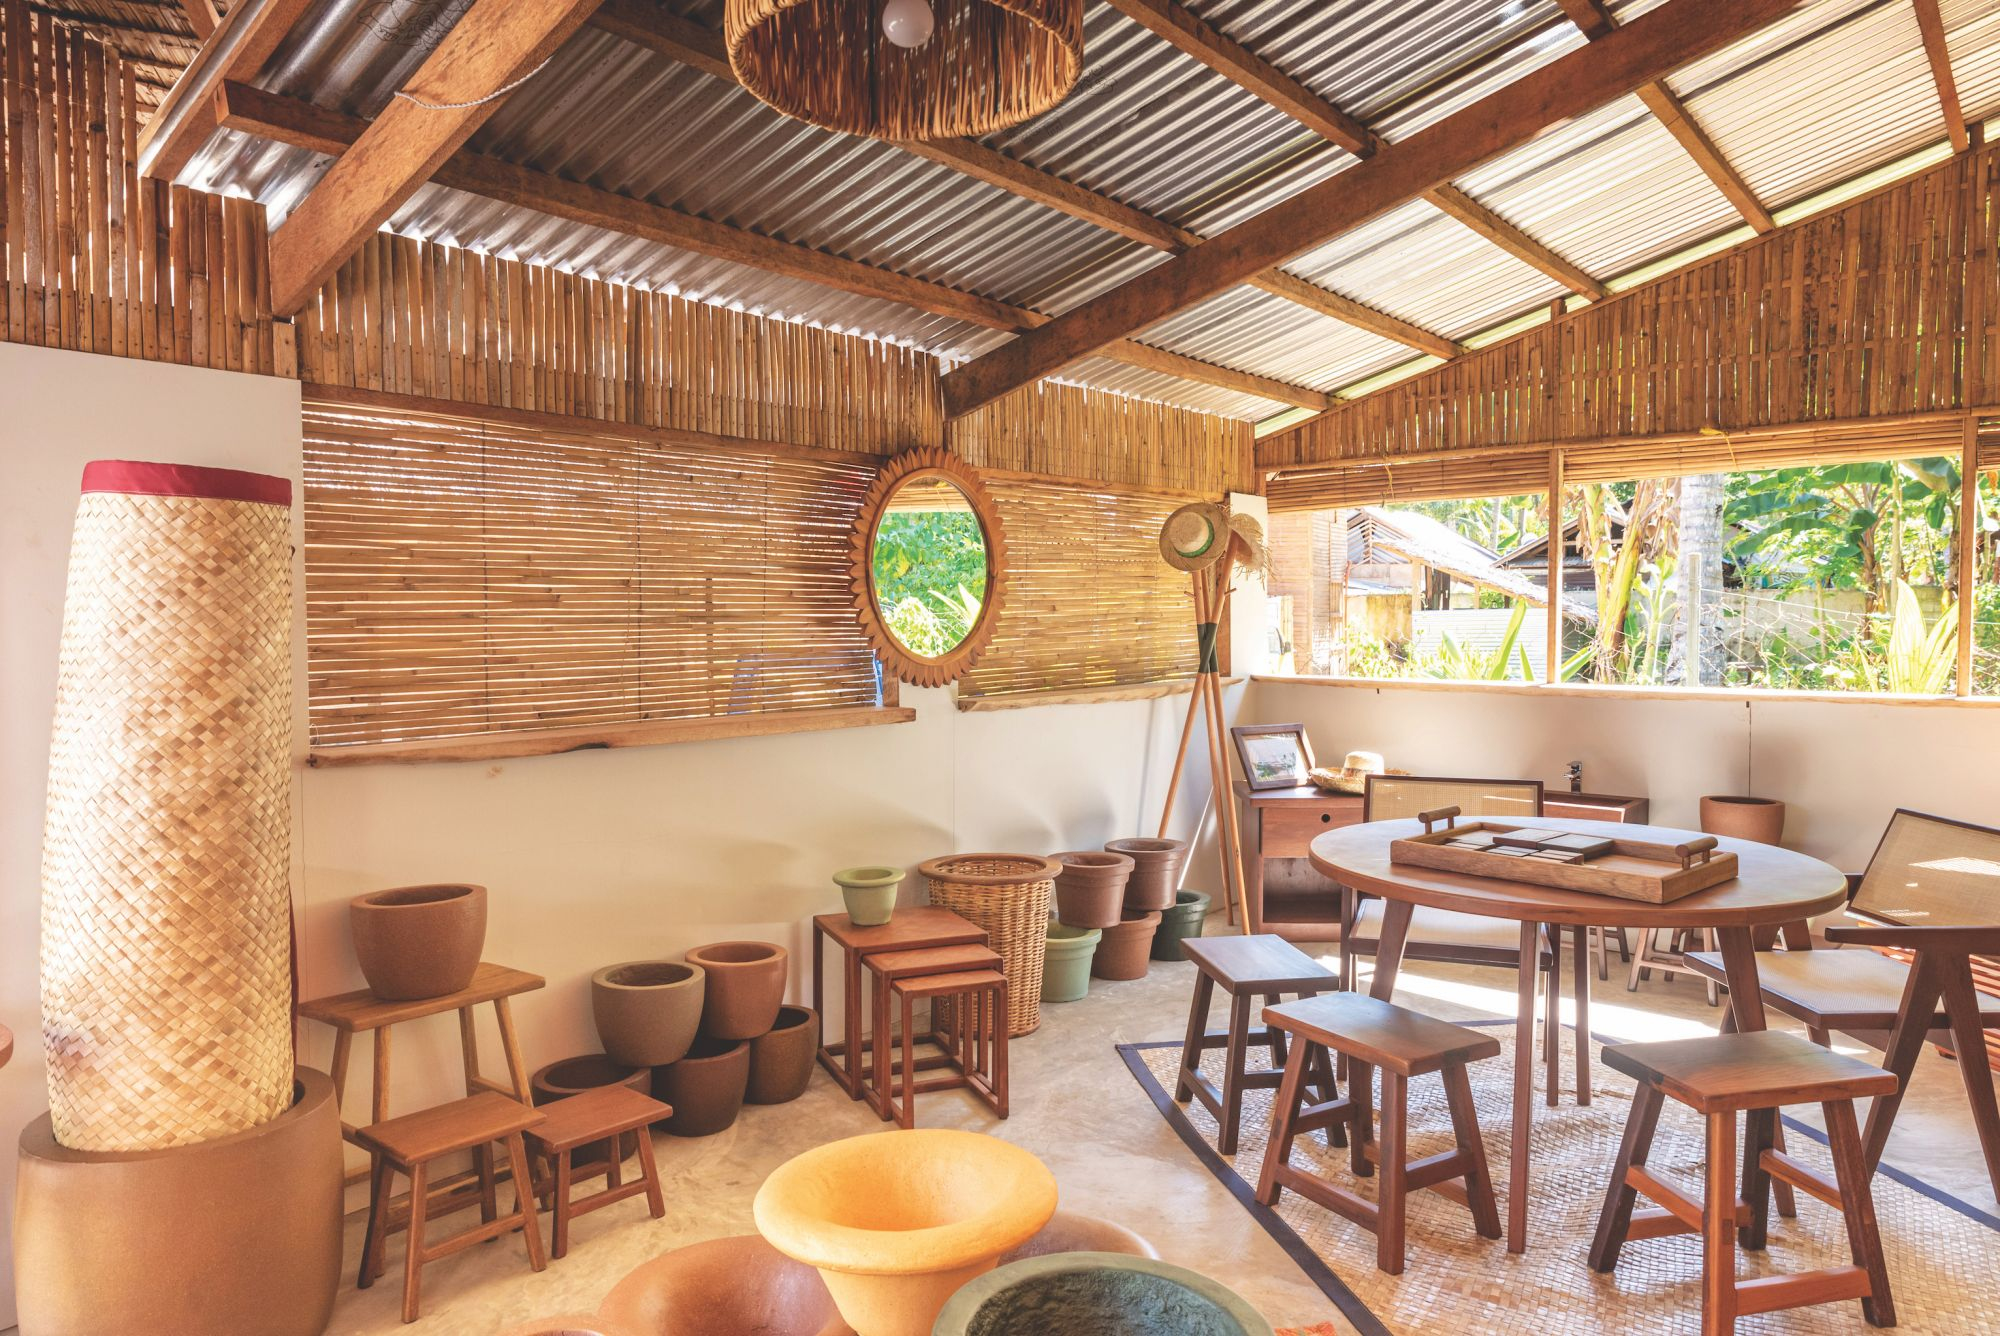 How Siargao Green Artisans Make Furniture Out Of Wood Scraps